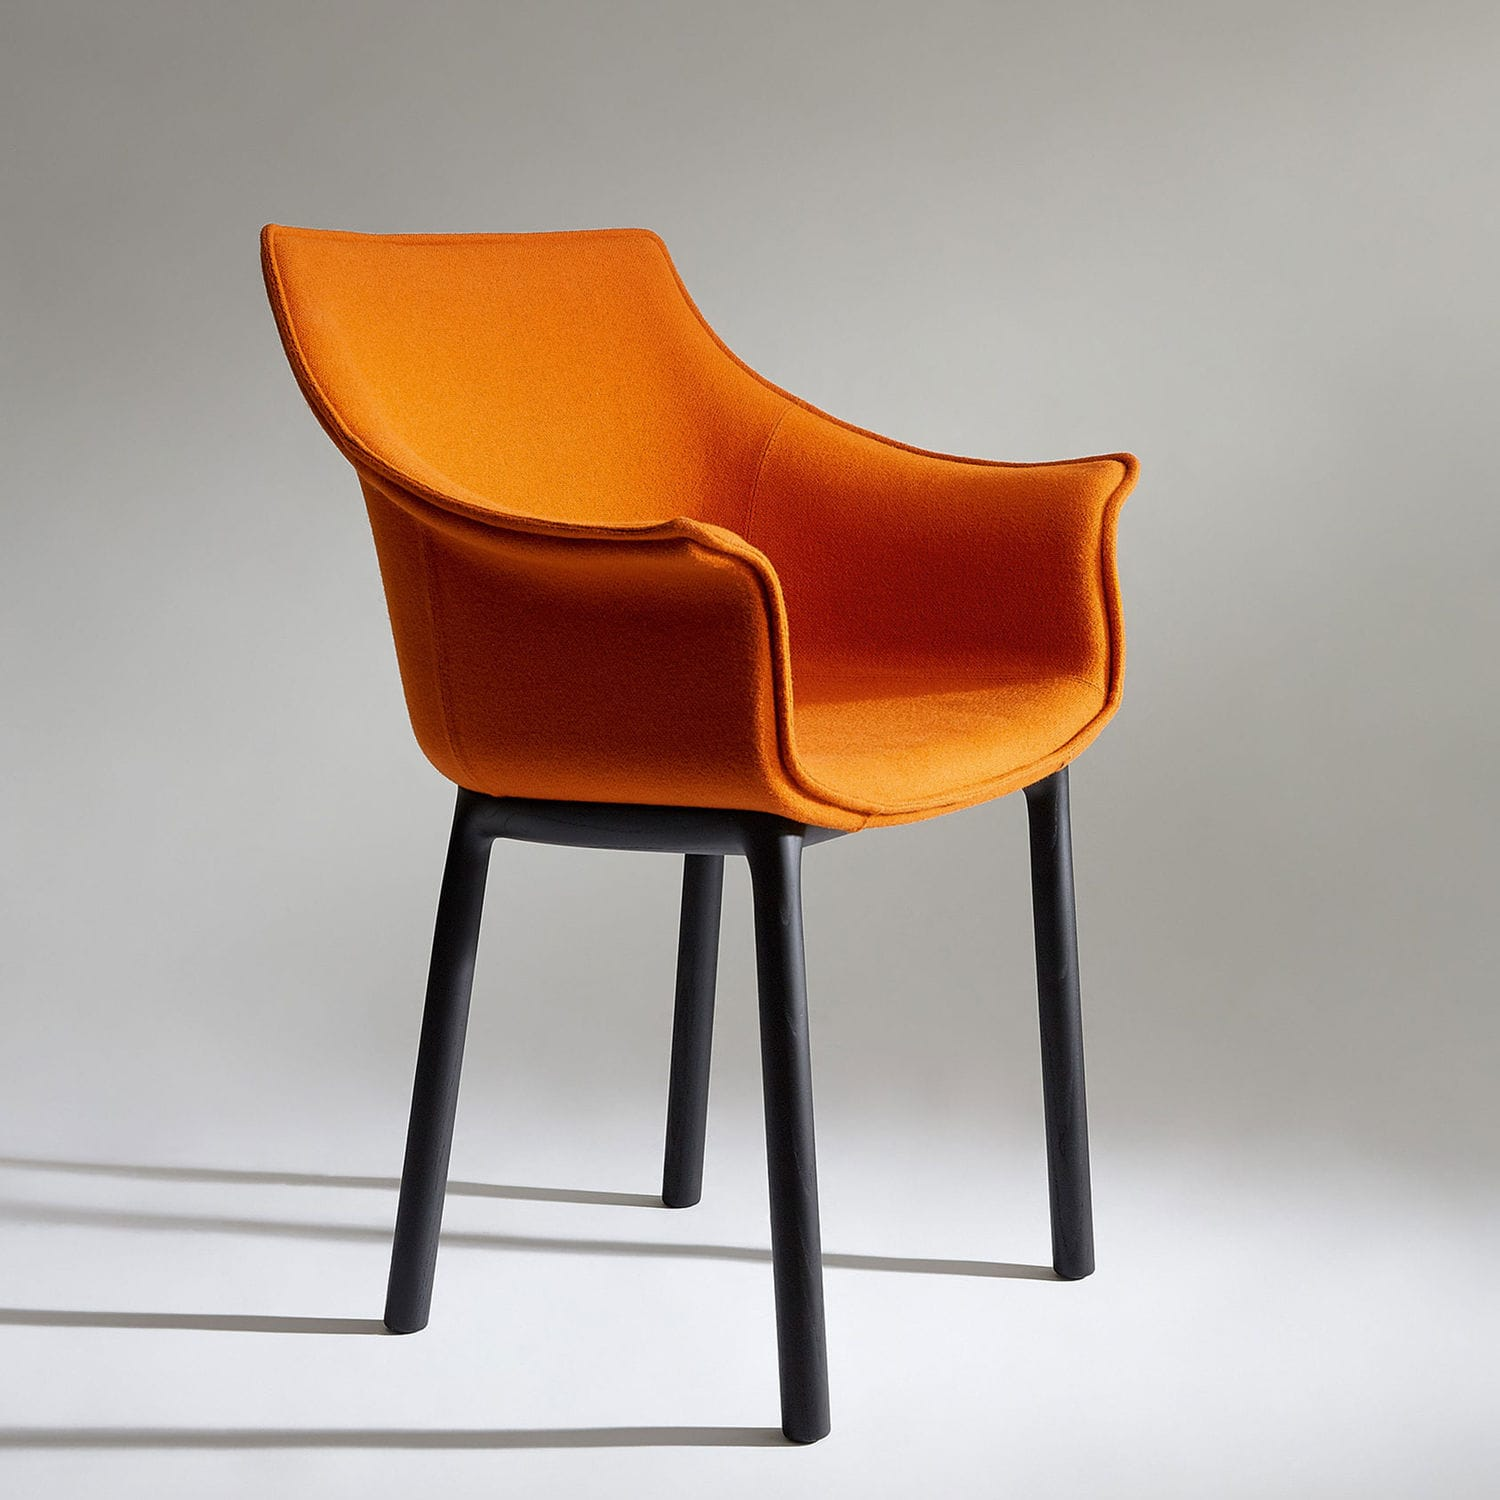 Wondrous Contemporary Dining Chair Upholstered With Armrests Camellatalisay Diy Chair Ideas Camellatalisaycom